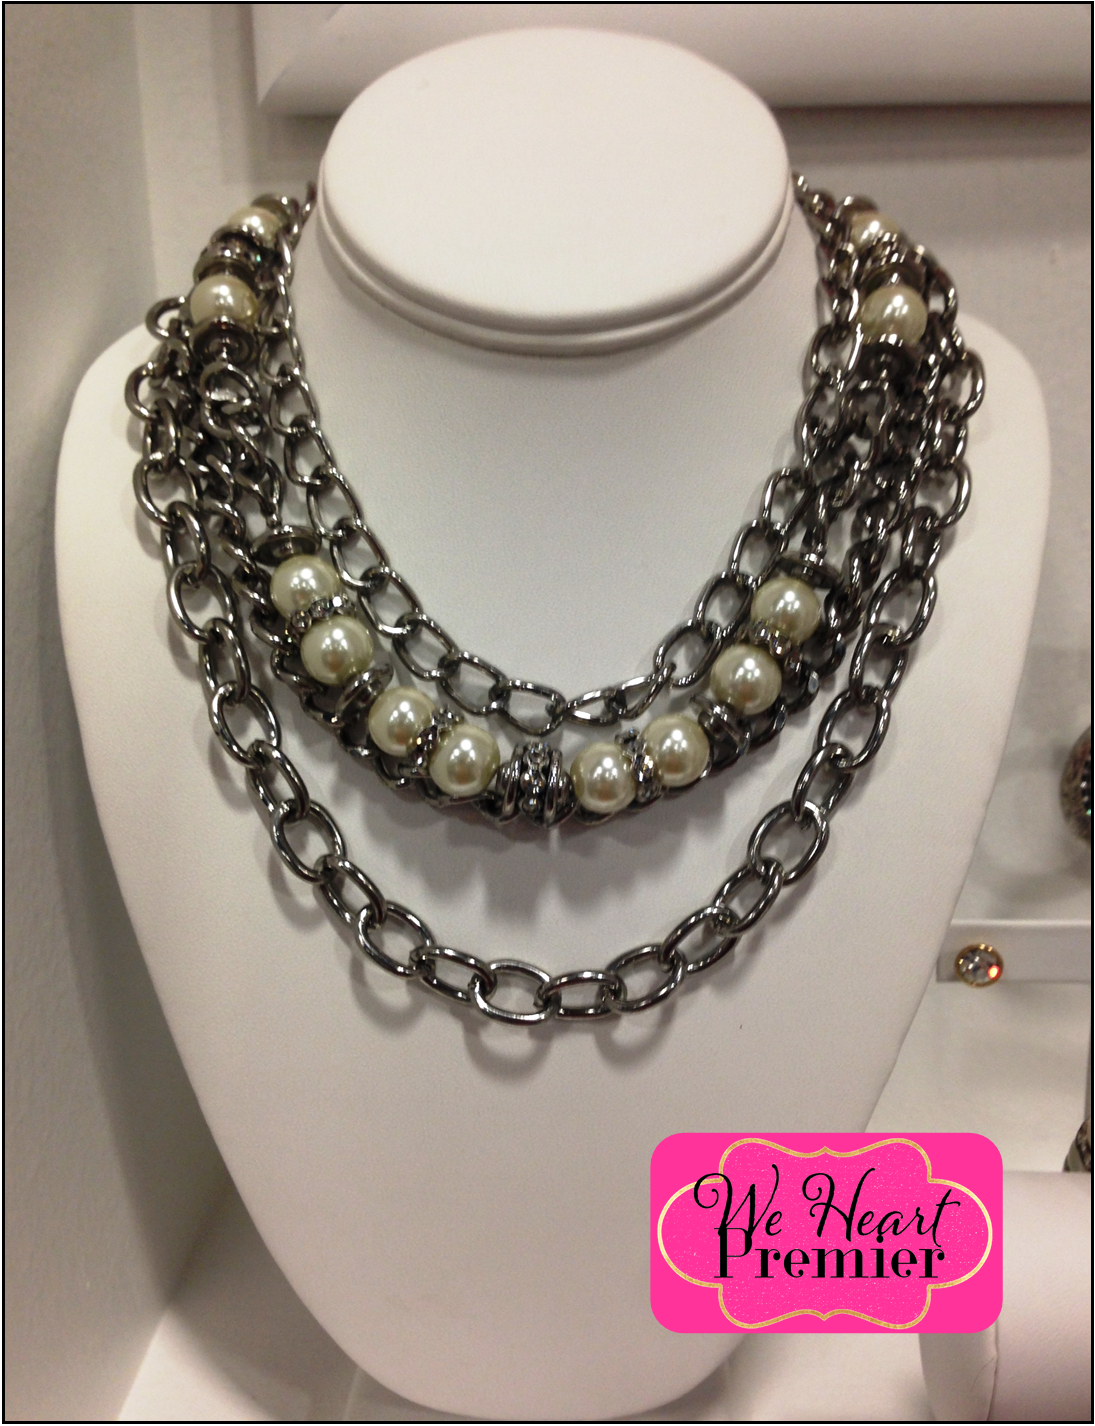 Premier designs jewelry 2015 - New Premier Collection Fall 2014